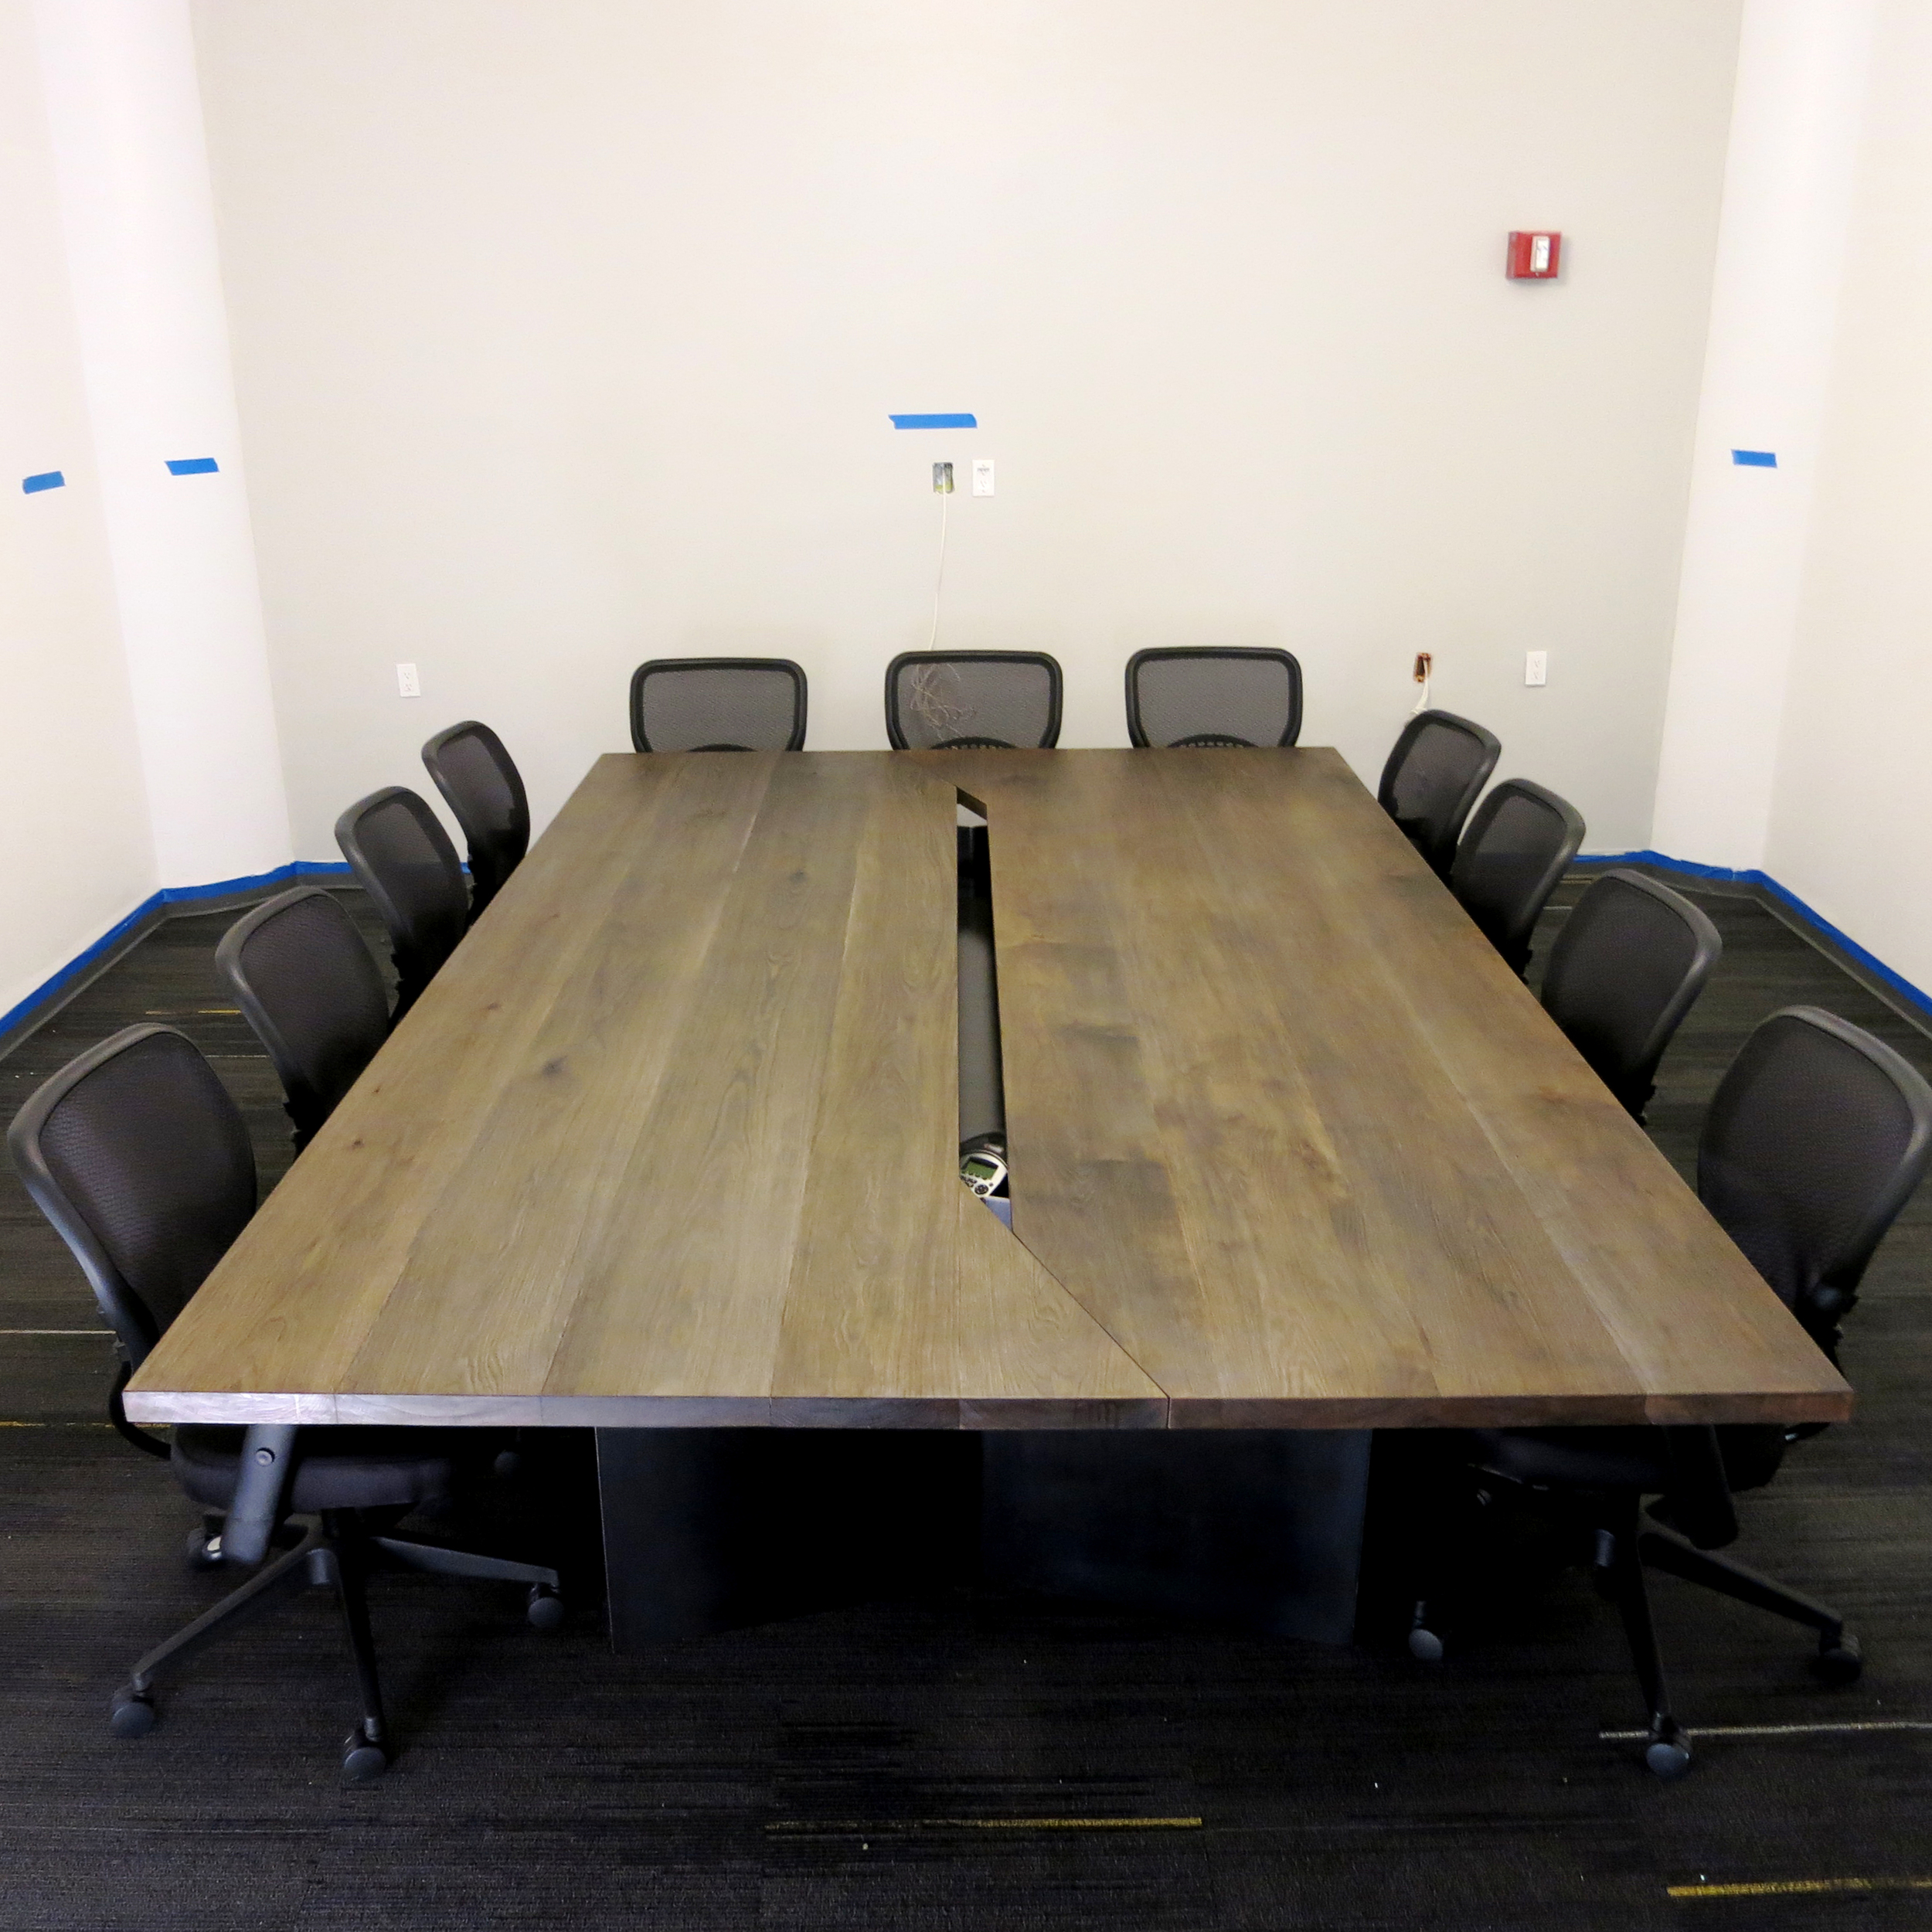 Main Conference Room Table: Fumed Oak, Steel Base, Produced by Withers & Grain, Brooklyn